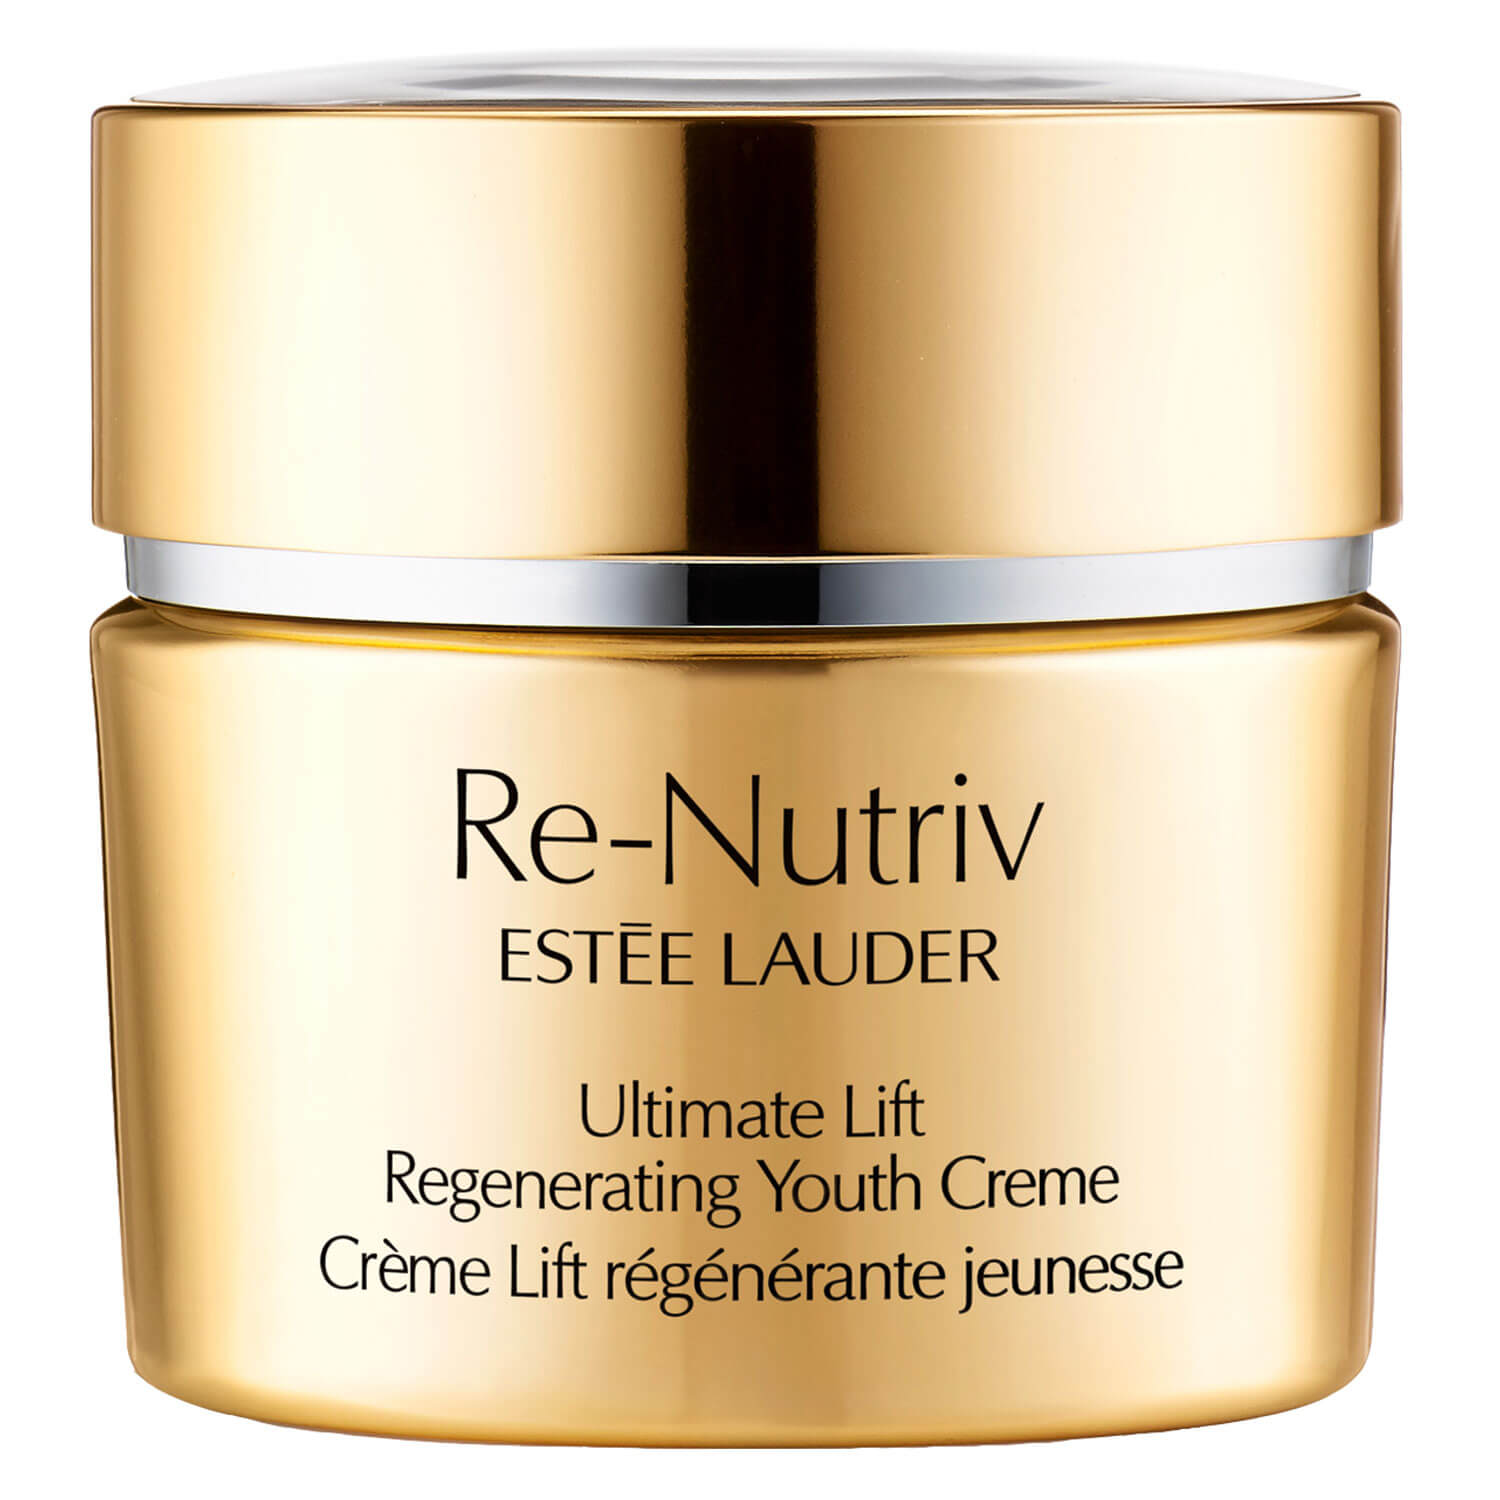 Re-Nutriv - Ultimate Lifting Regenerating Youth Creme